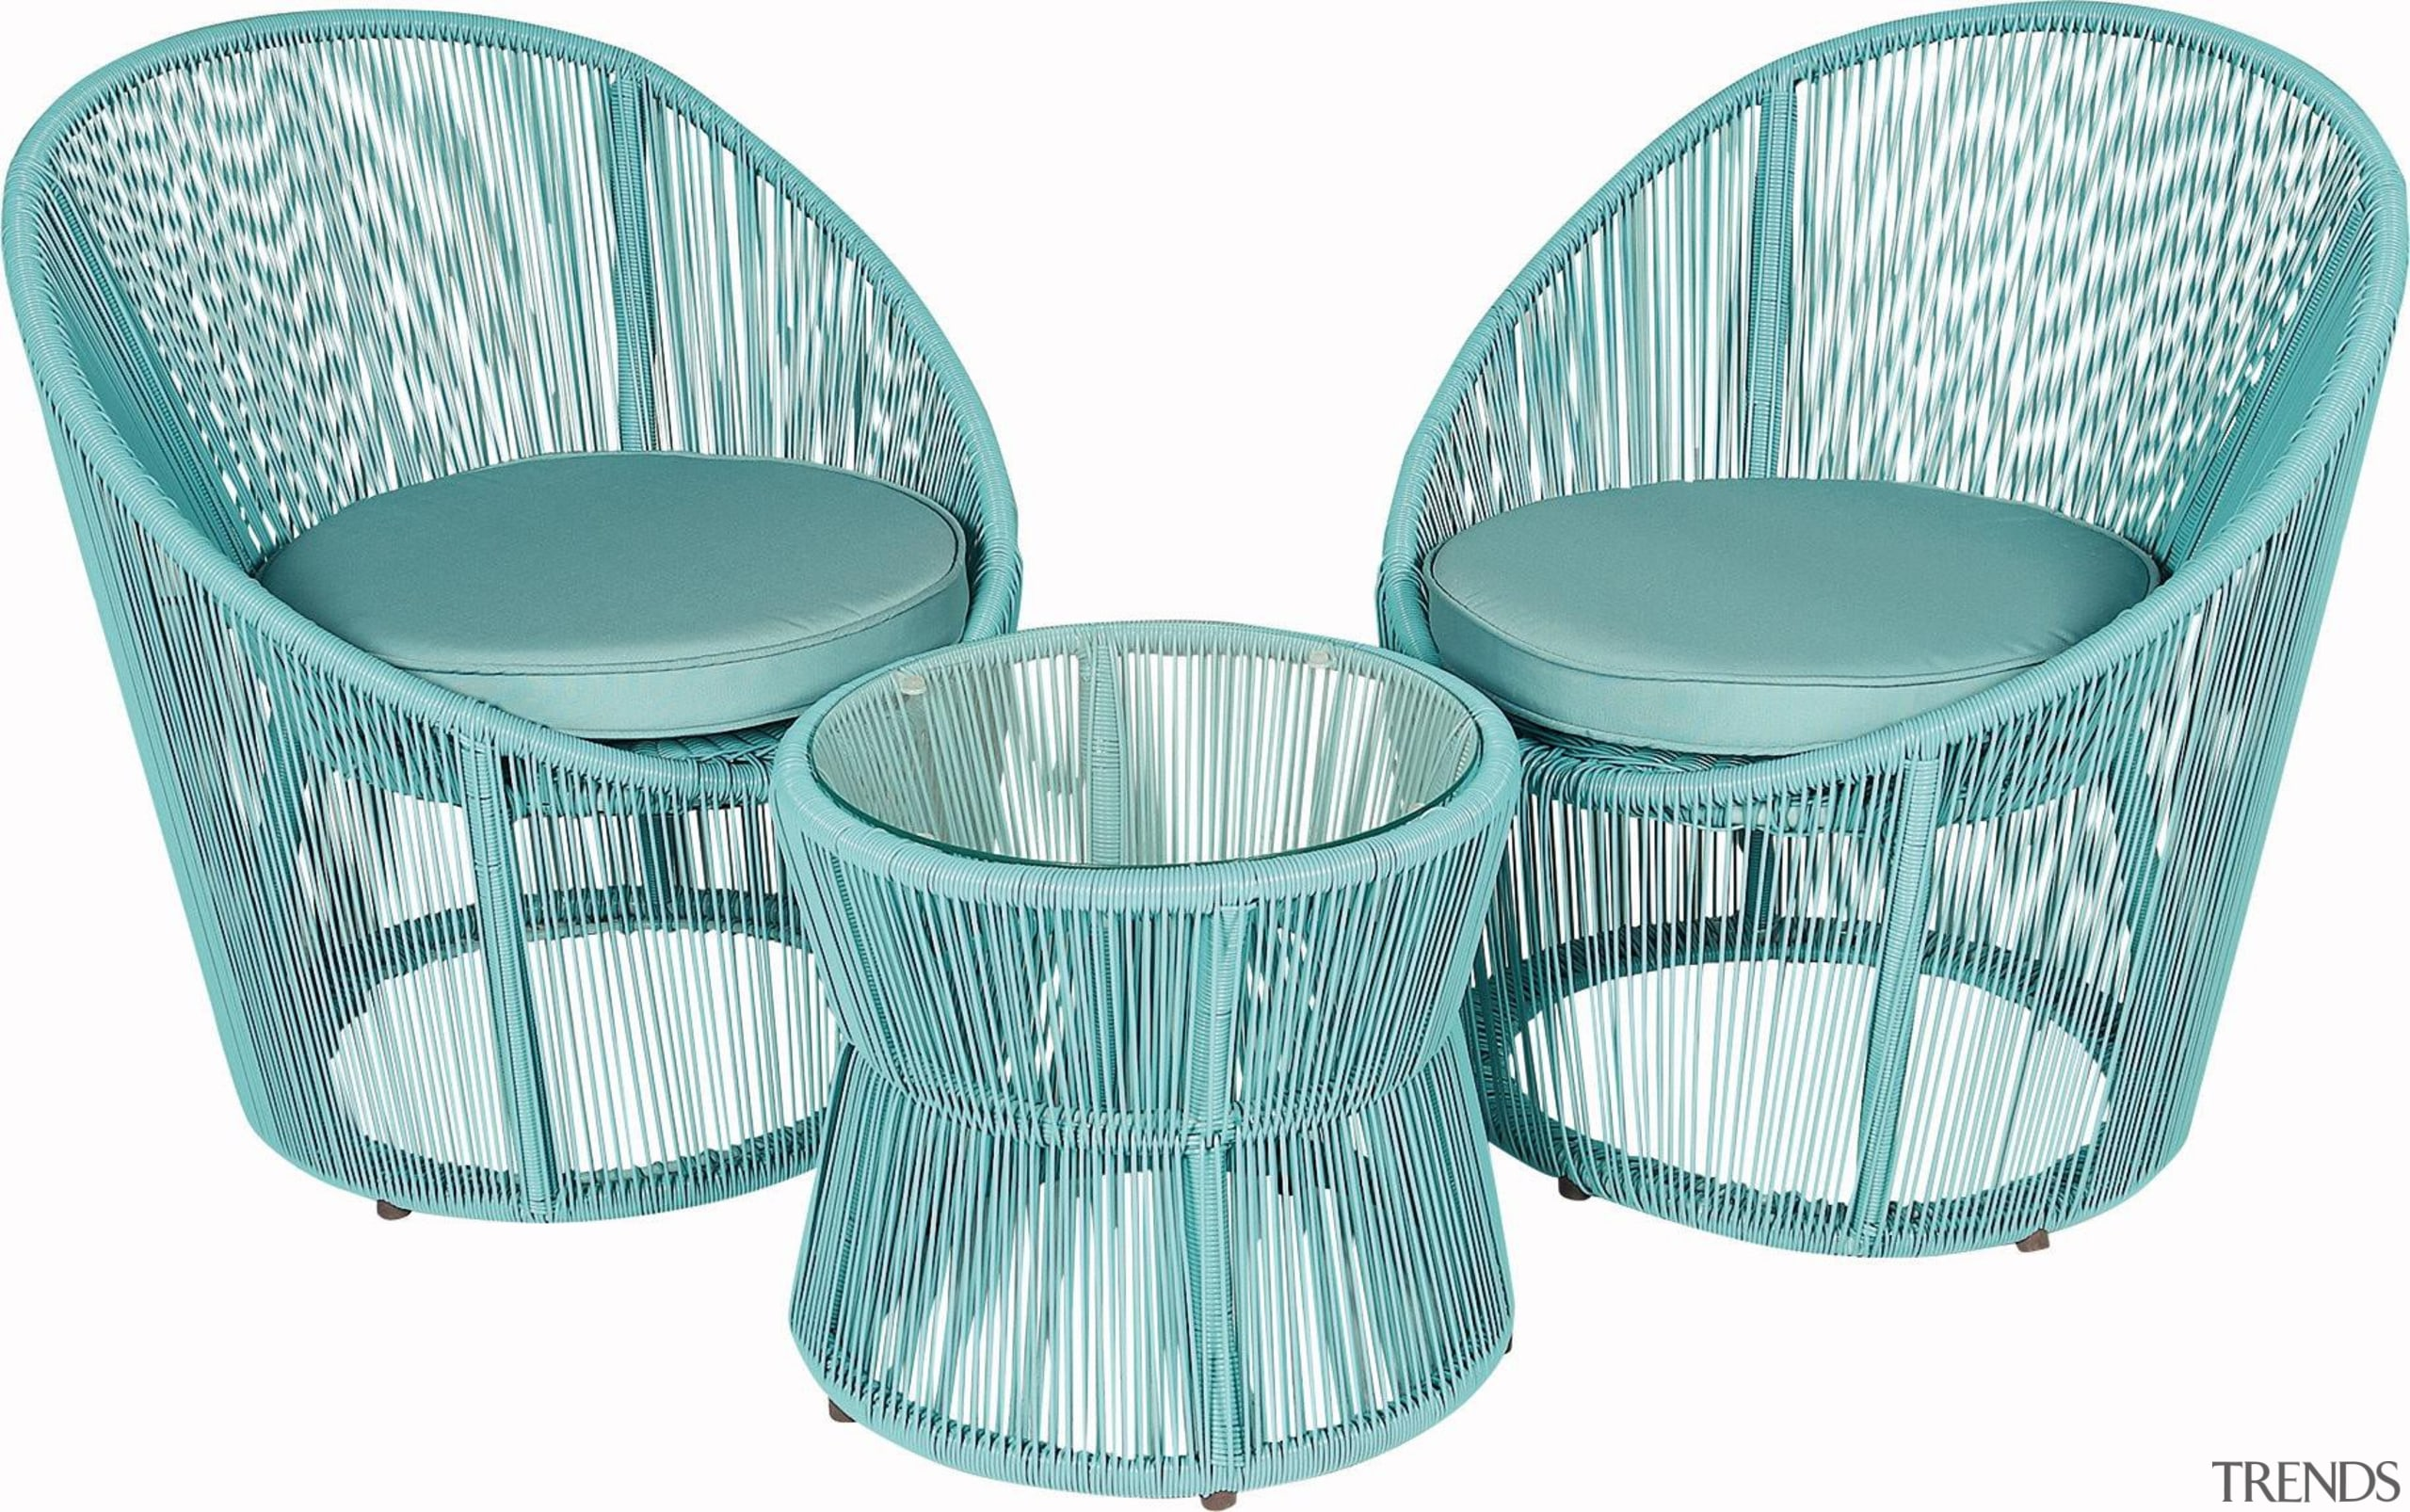 There's nothing quite like a Kiwi summer – chair, furniture, product, product design, wicker, white, teal